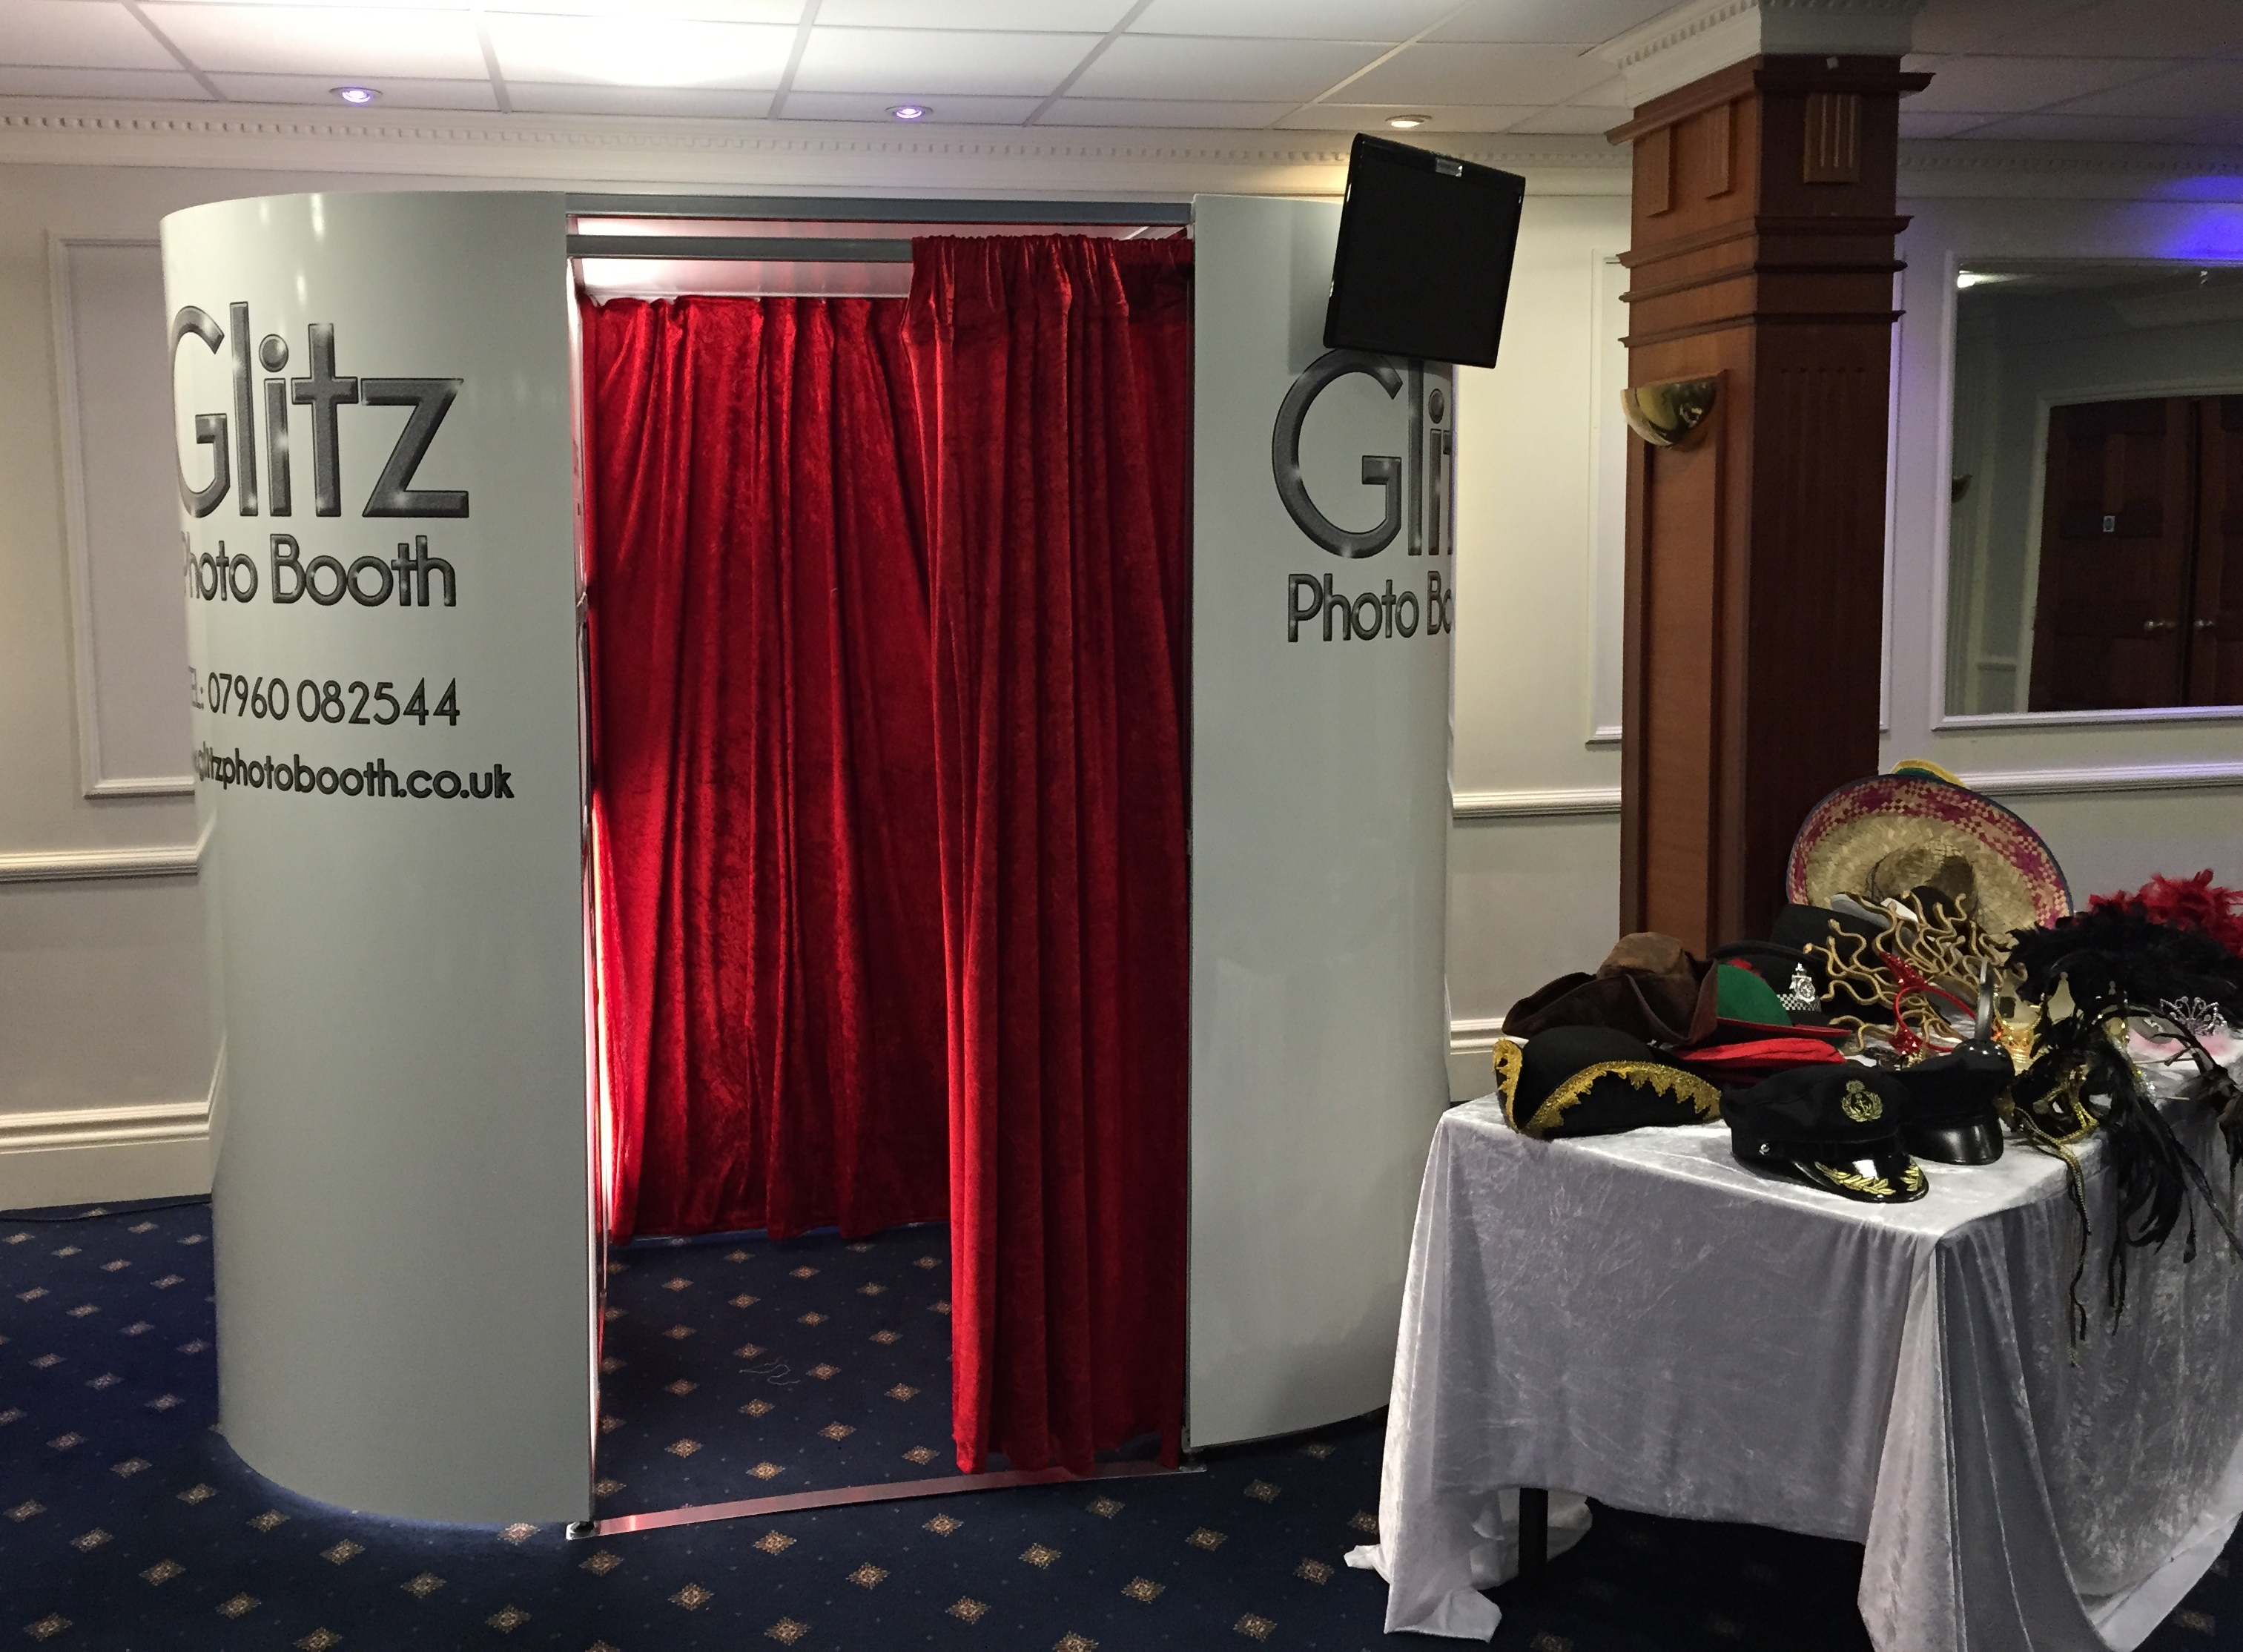 White booth with Red curtains